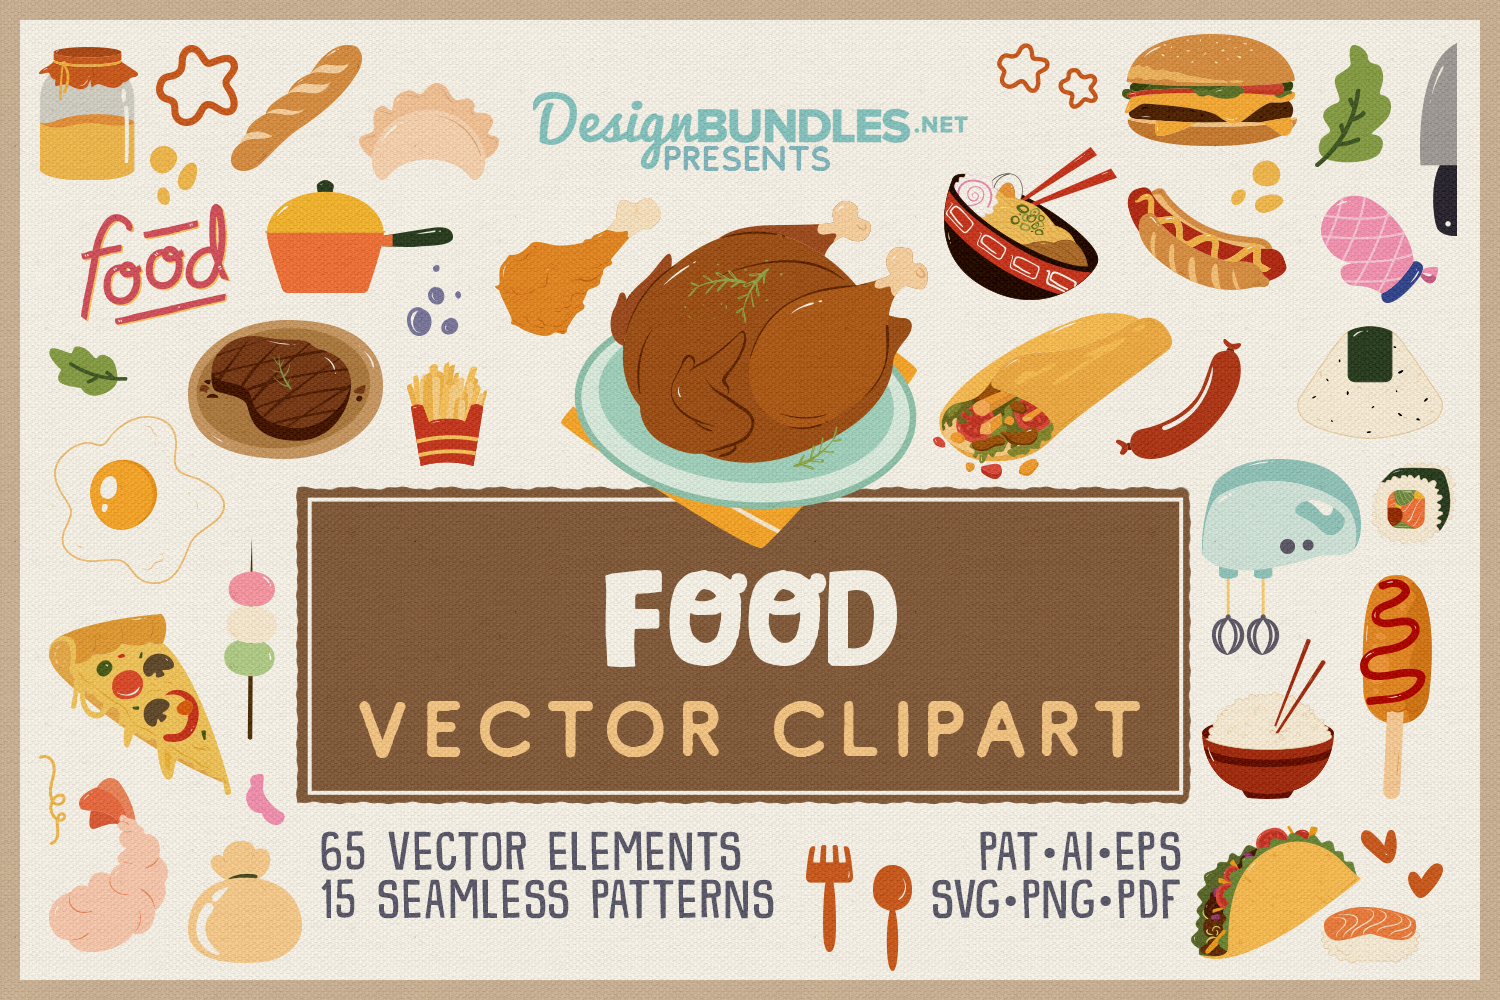 Food Vector Clipart & Seamless Patterns example image 1